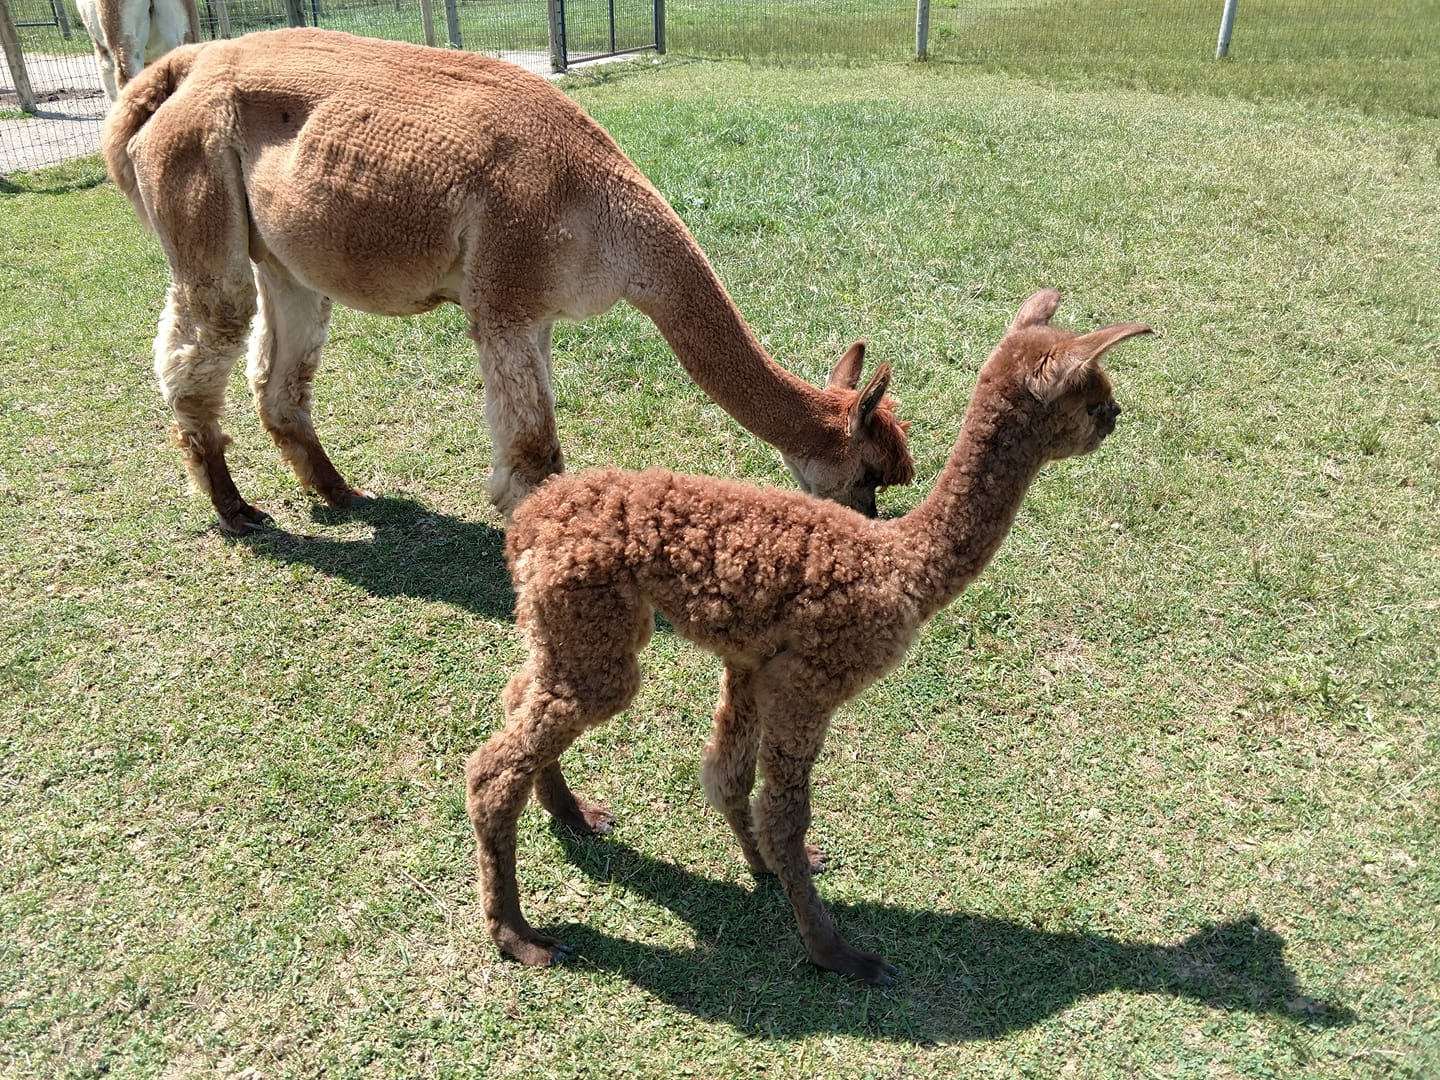 This Adorable Alpaca Farm Two Hours Outside Columbus Will Make You Feel All Warm And Fuzzy